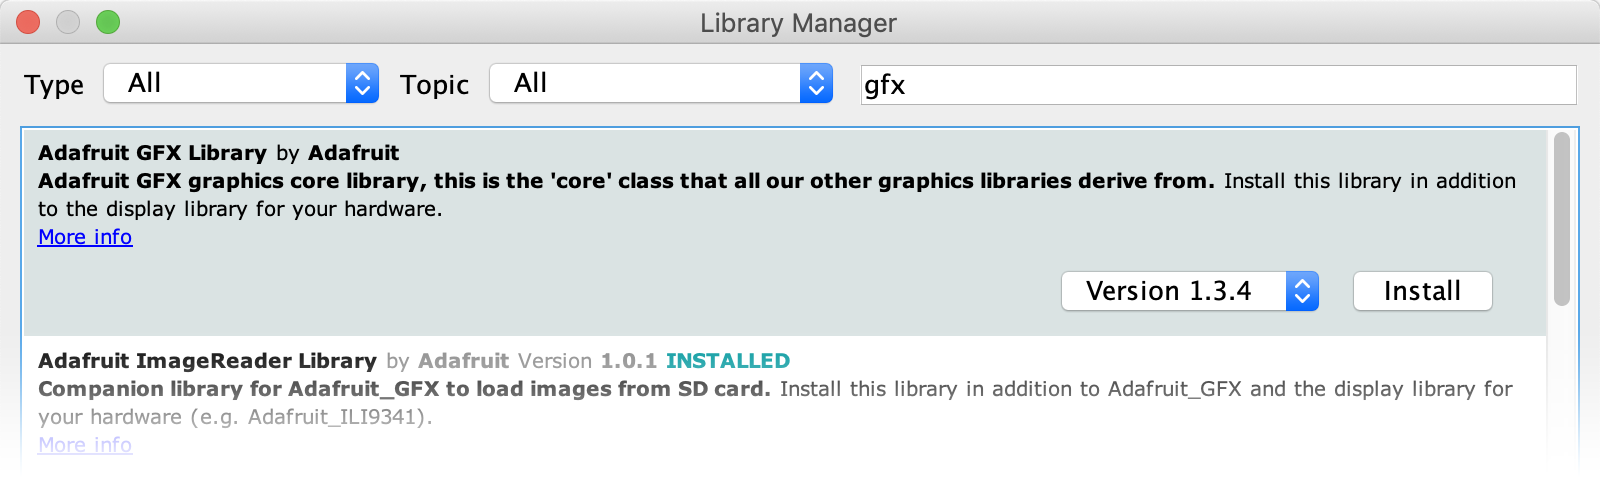 graphic_tfts_arduino_compatibles_adafruit-gfx-library-manager.png